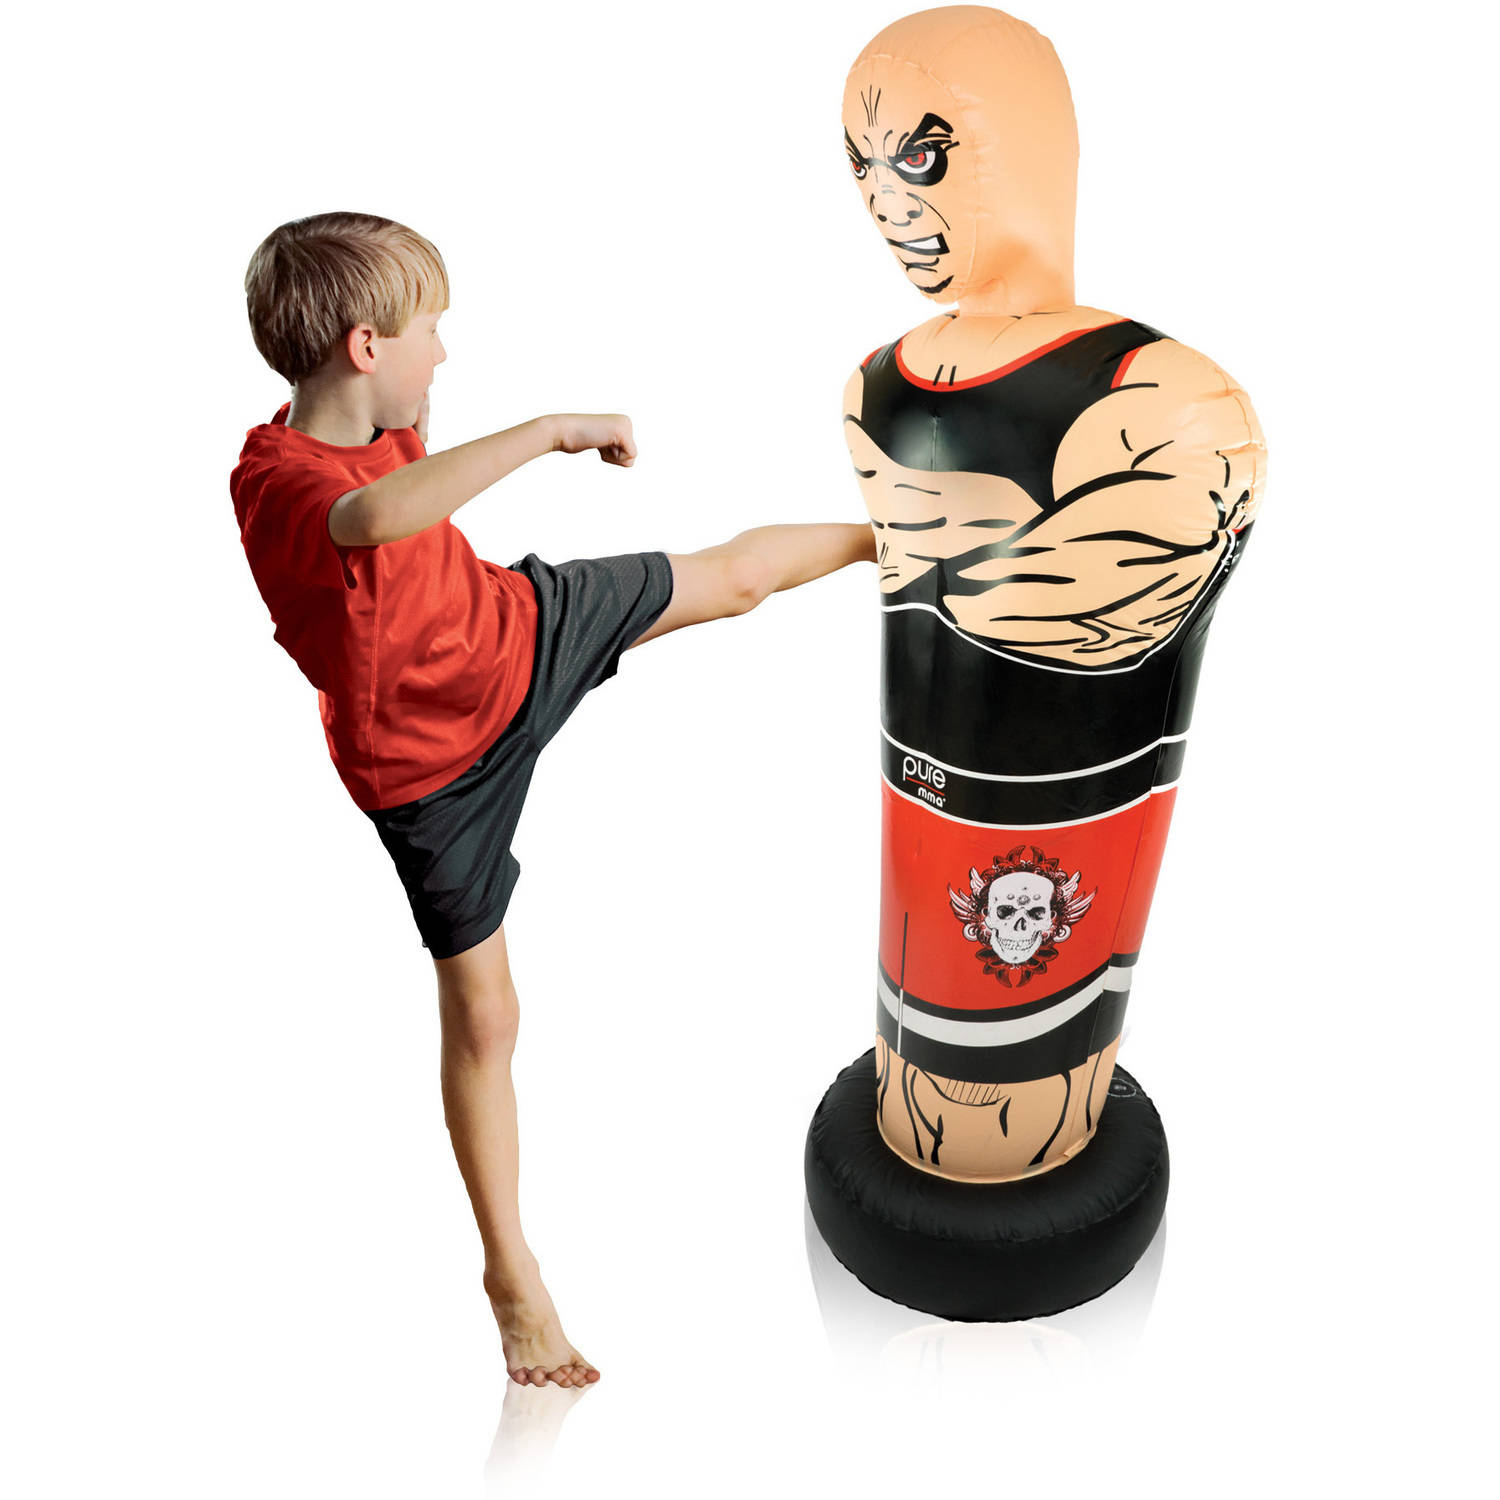 Pure Boxing Tough Guy Inflatable Punching Bag for Kids by Global Quality Brands